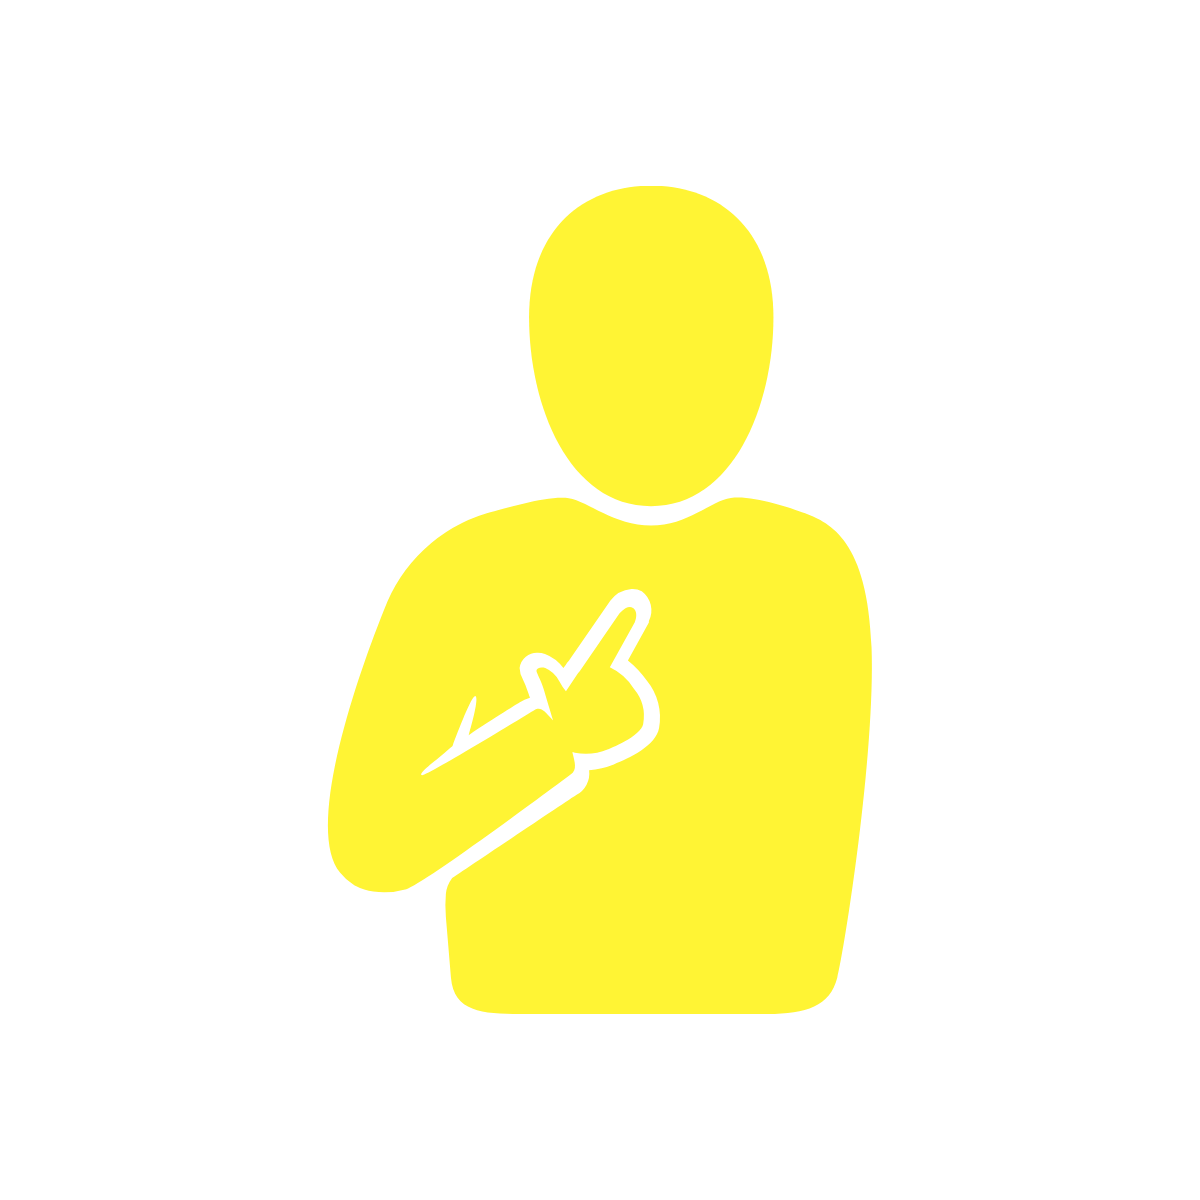 a person pointing at themselves